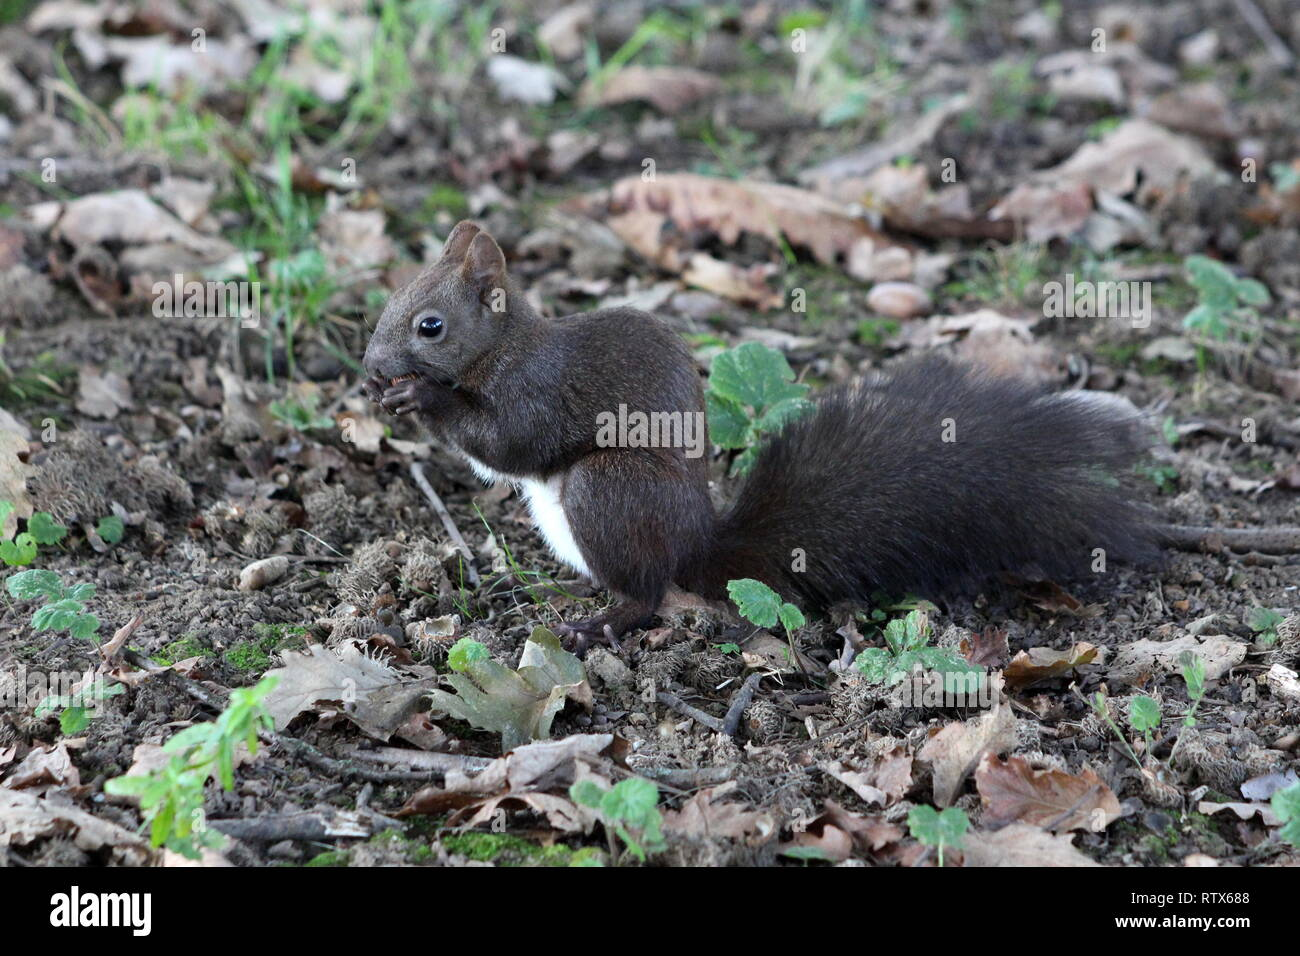 Small grey squirrel with beautiful hairy tail sitting calmly and eating nut surrounded with fallen leaves in local park on warm sunny day - Stock Image